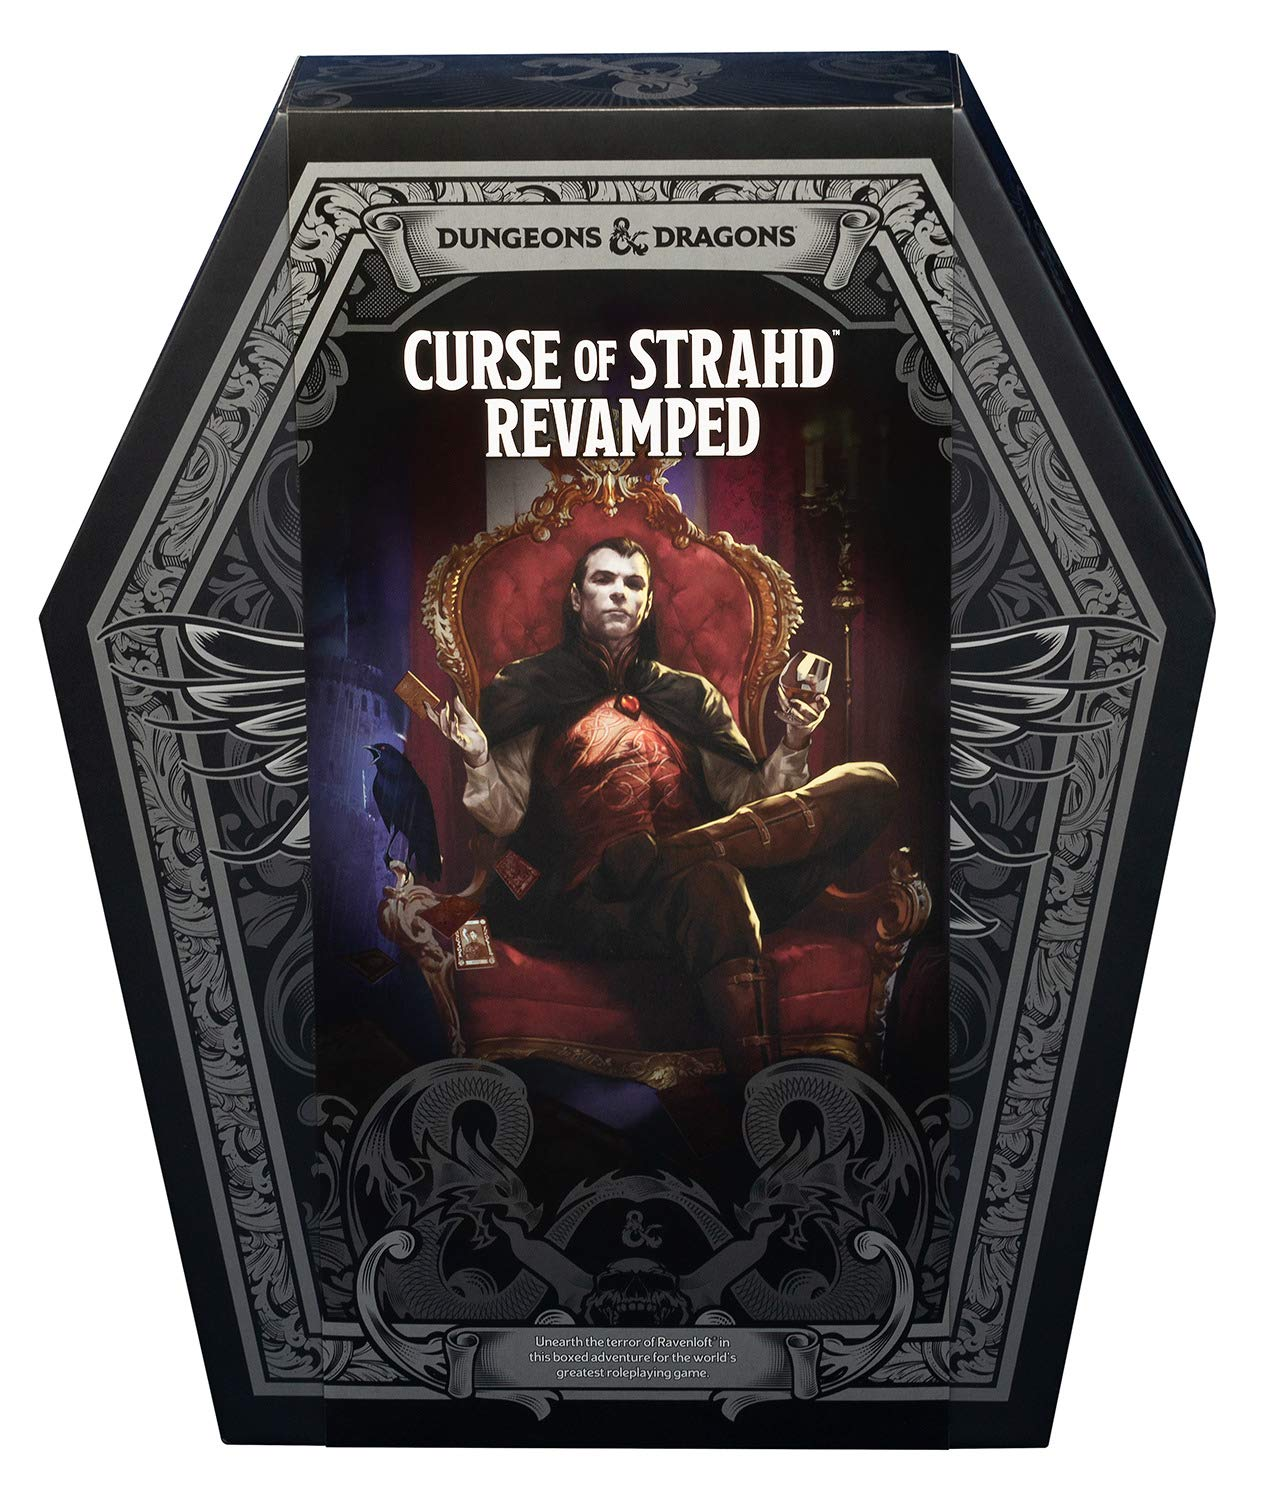 Curse of Strahd Revamped - D&D Adventure Coffin Giveaway